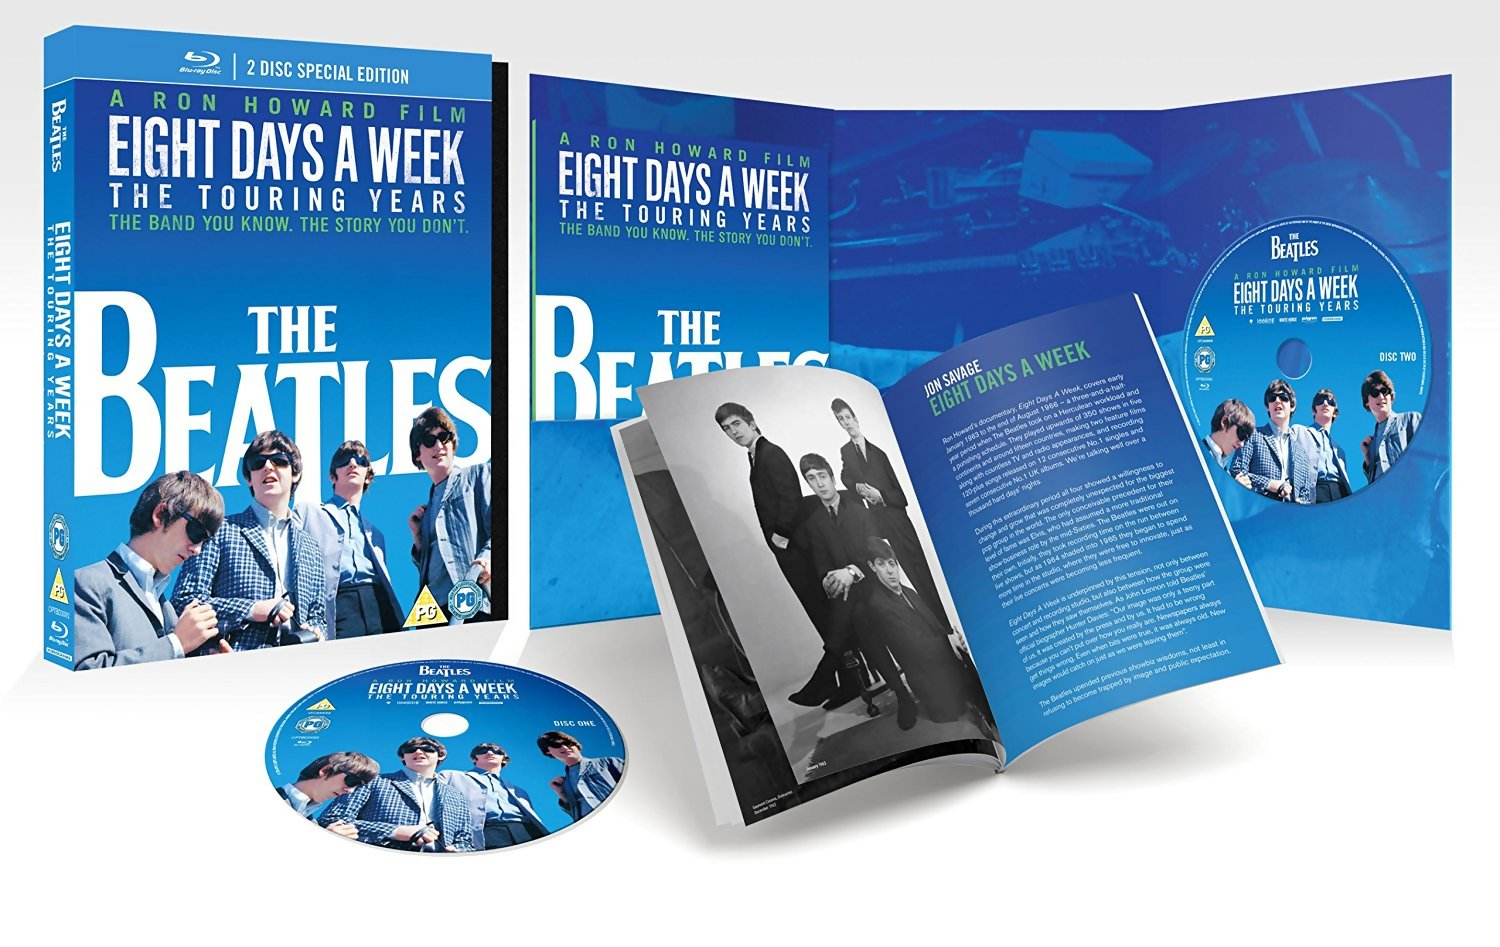 Eight Days a Week is a Beatles documentary directed by Ron Howard.